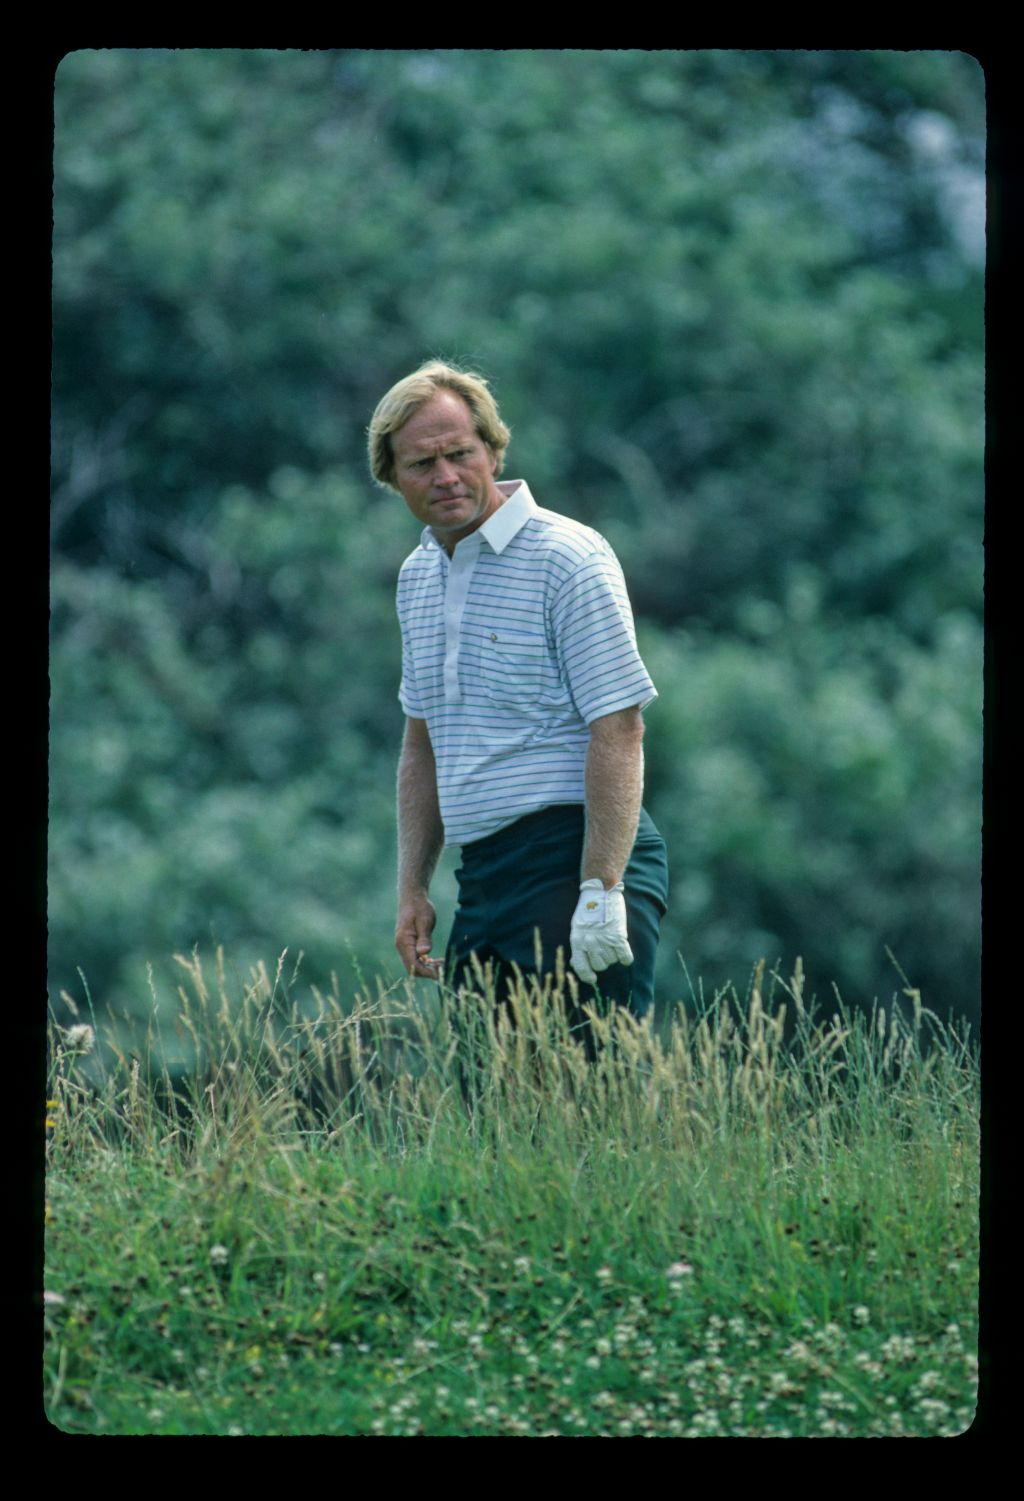 Jack Nicklaus in the thick rough during the 1983 Open Championship